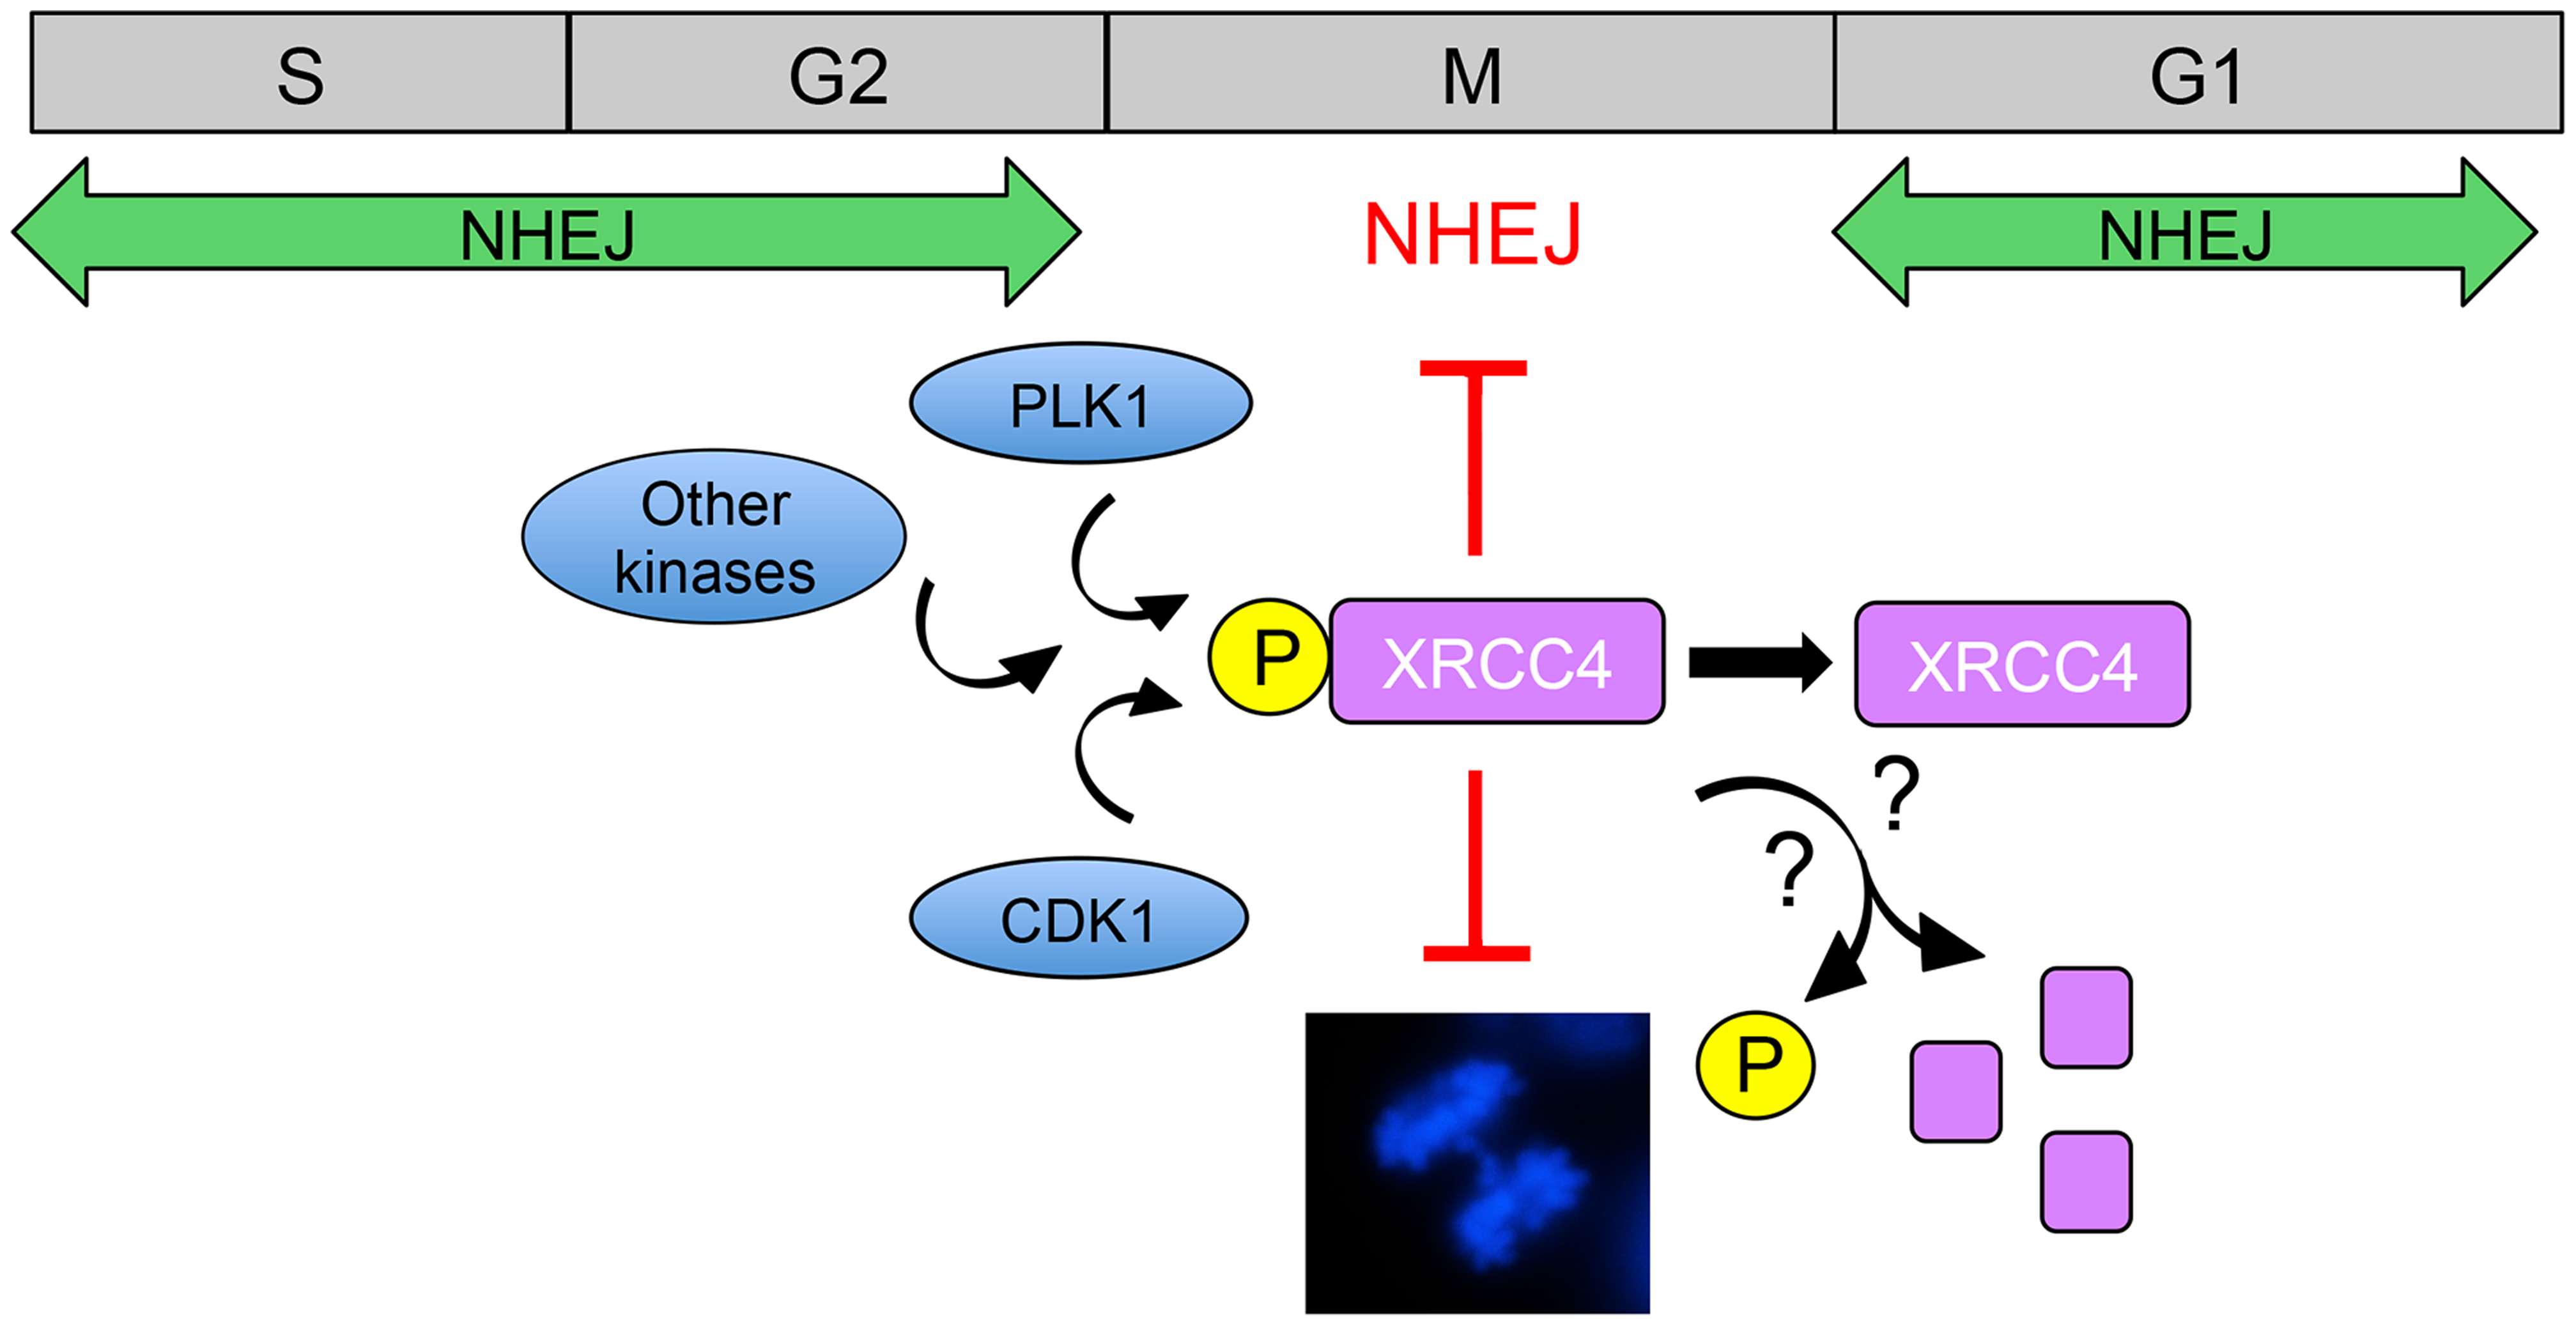 Model for suppression of NHEJ in mitosis by phosphorylated XRCC4.